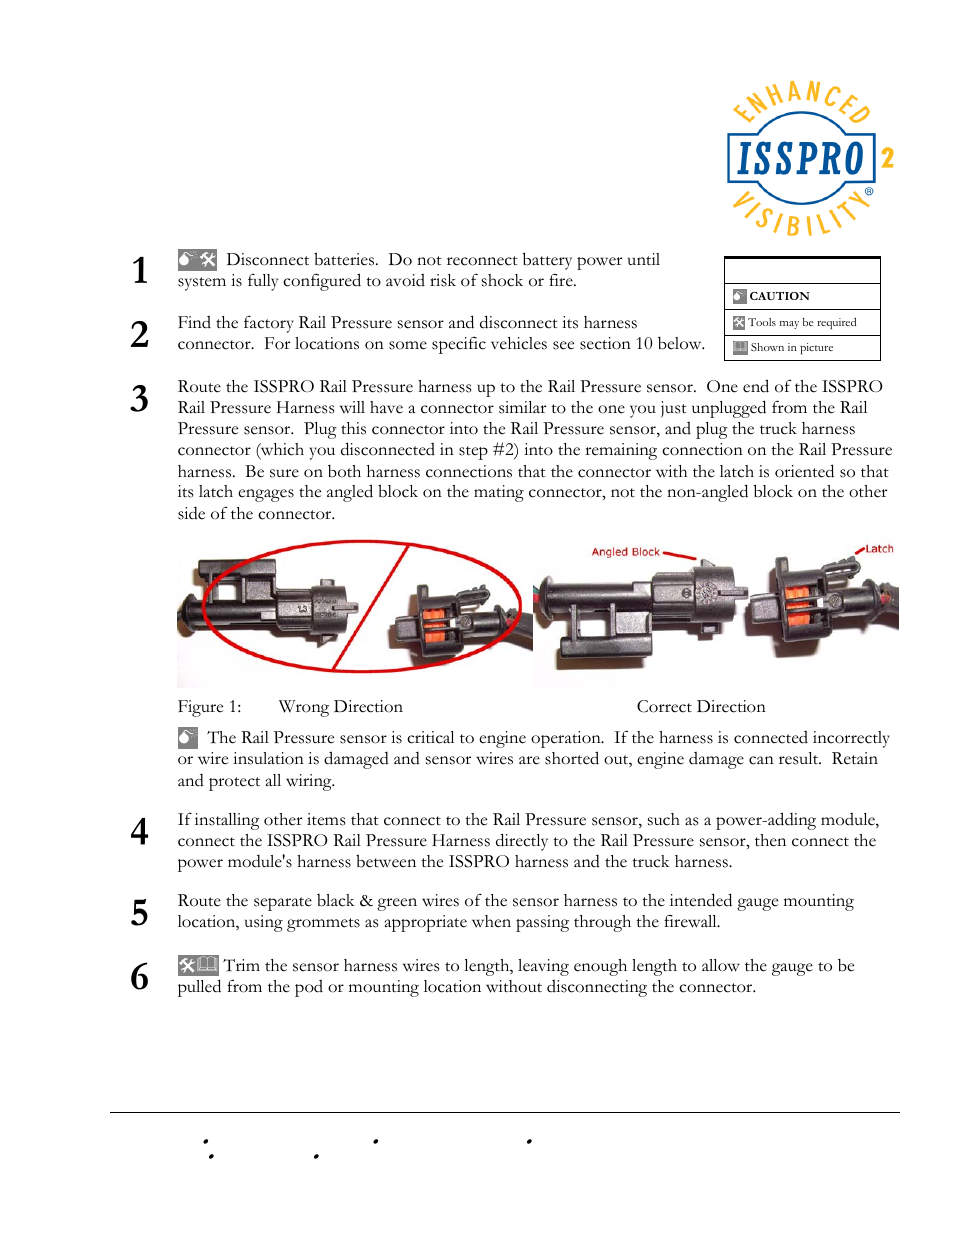 ISSPRO R11289 User Manual | 2 pages | Also for: R11288 ... on